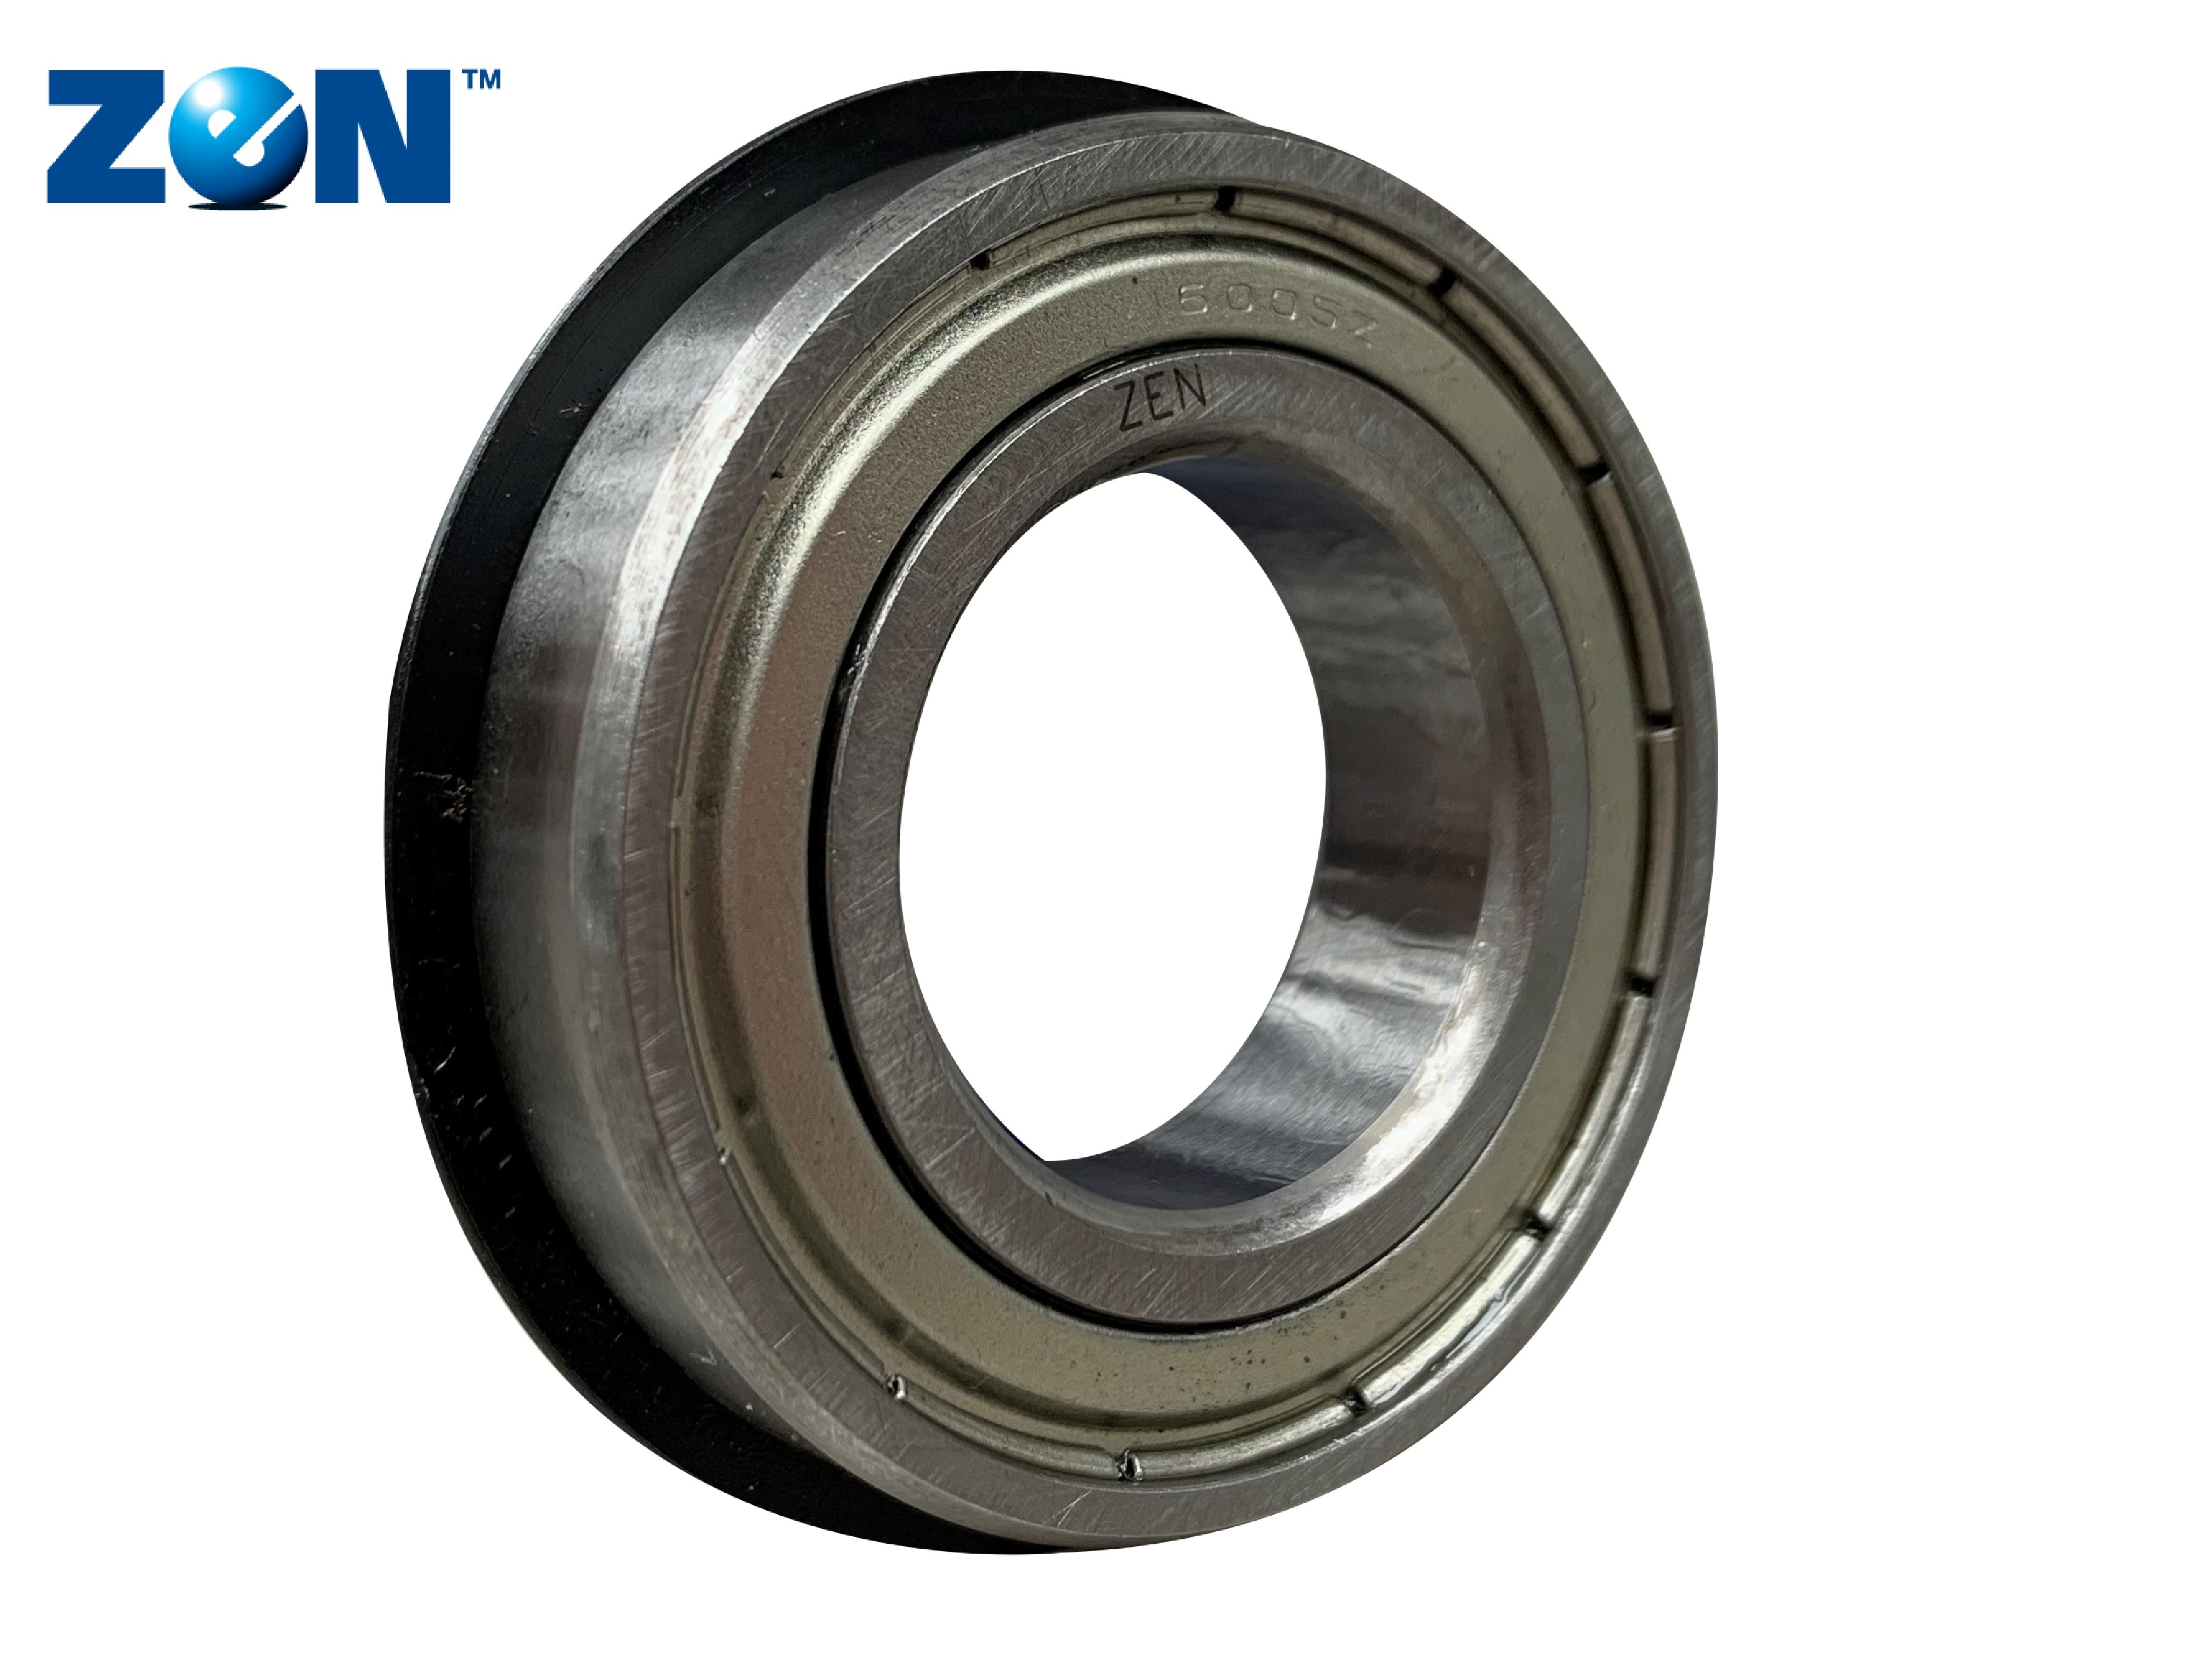 ZEN 6201-2Z-NR Shielded Ball Bearing With Snap Ring 12mm x 32mm x 10mm